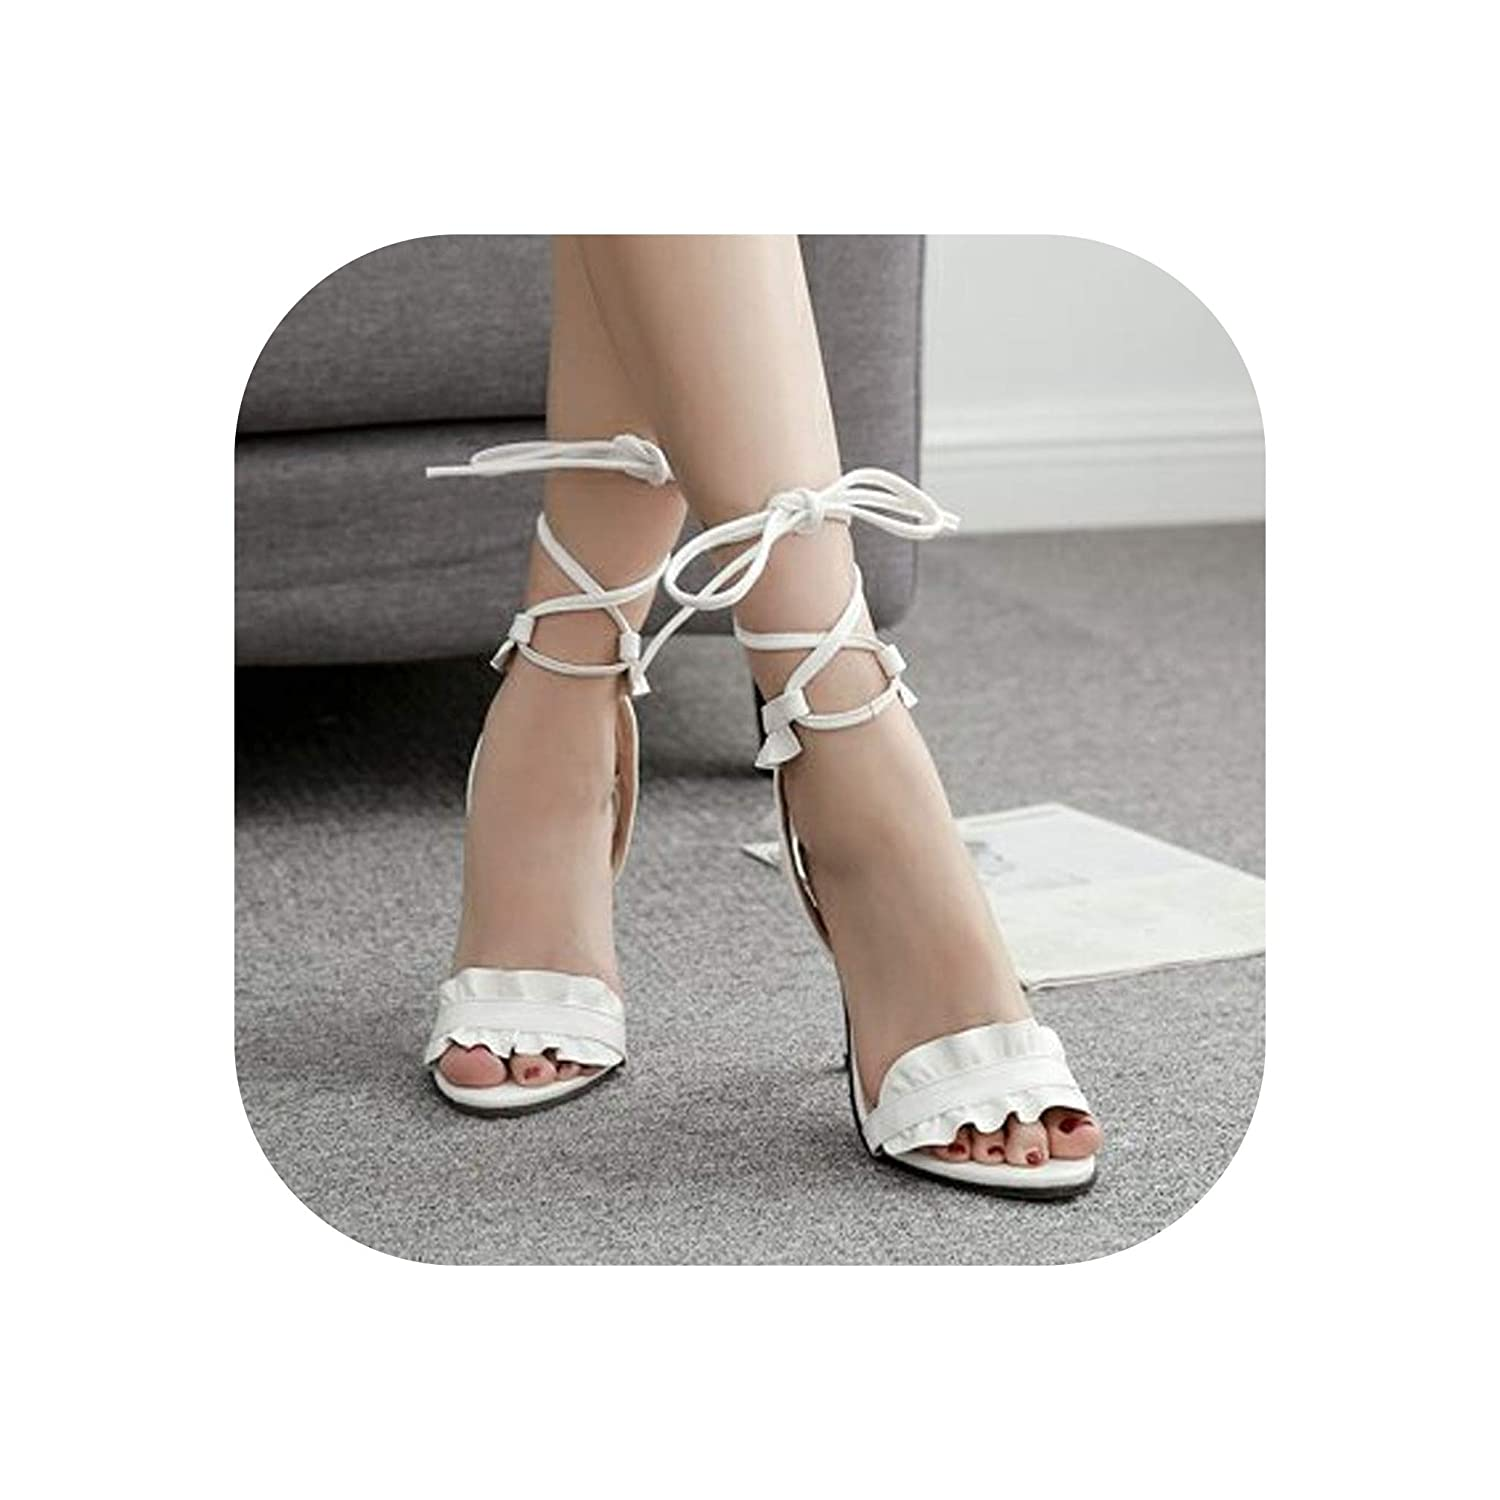 White High Stiletto Heels Sandals Women Pumps Thin Heel Ruffle Lace-Up Summer shoes